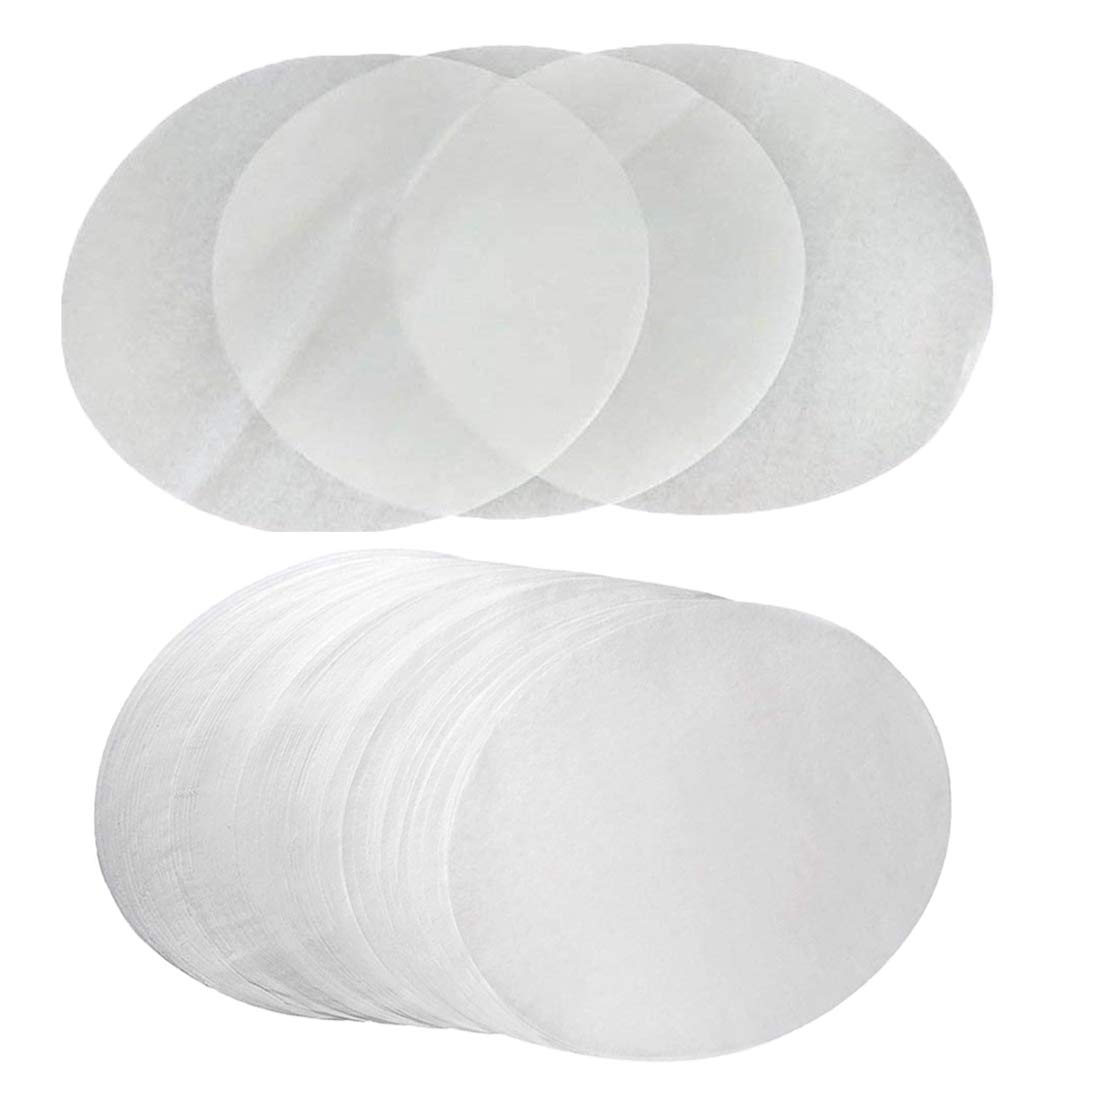 (Set of 200) Parchment Paper 12 inch Diameter Round Non-Stick Baking Paper Liners Cake Pans Circle Cookies Cheesecake Deep Dish Pizza